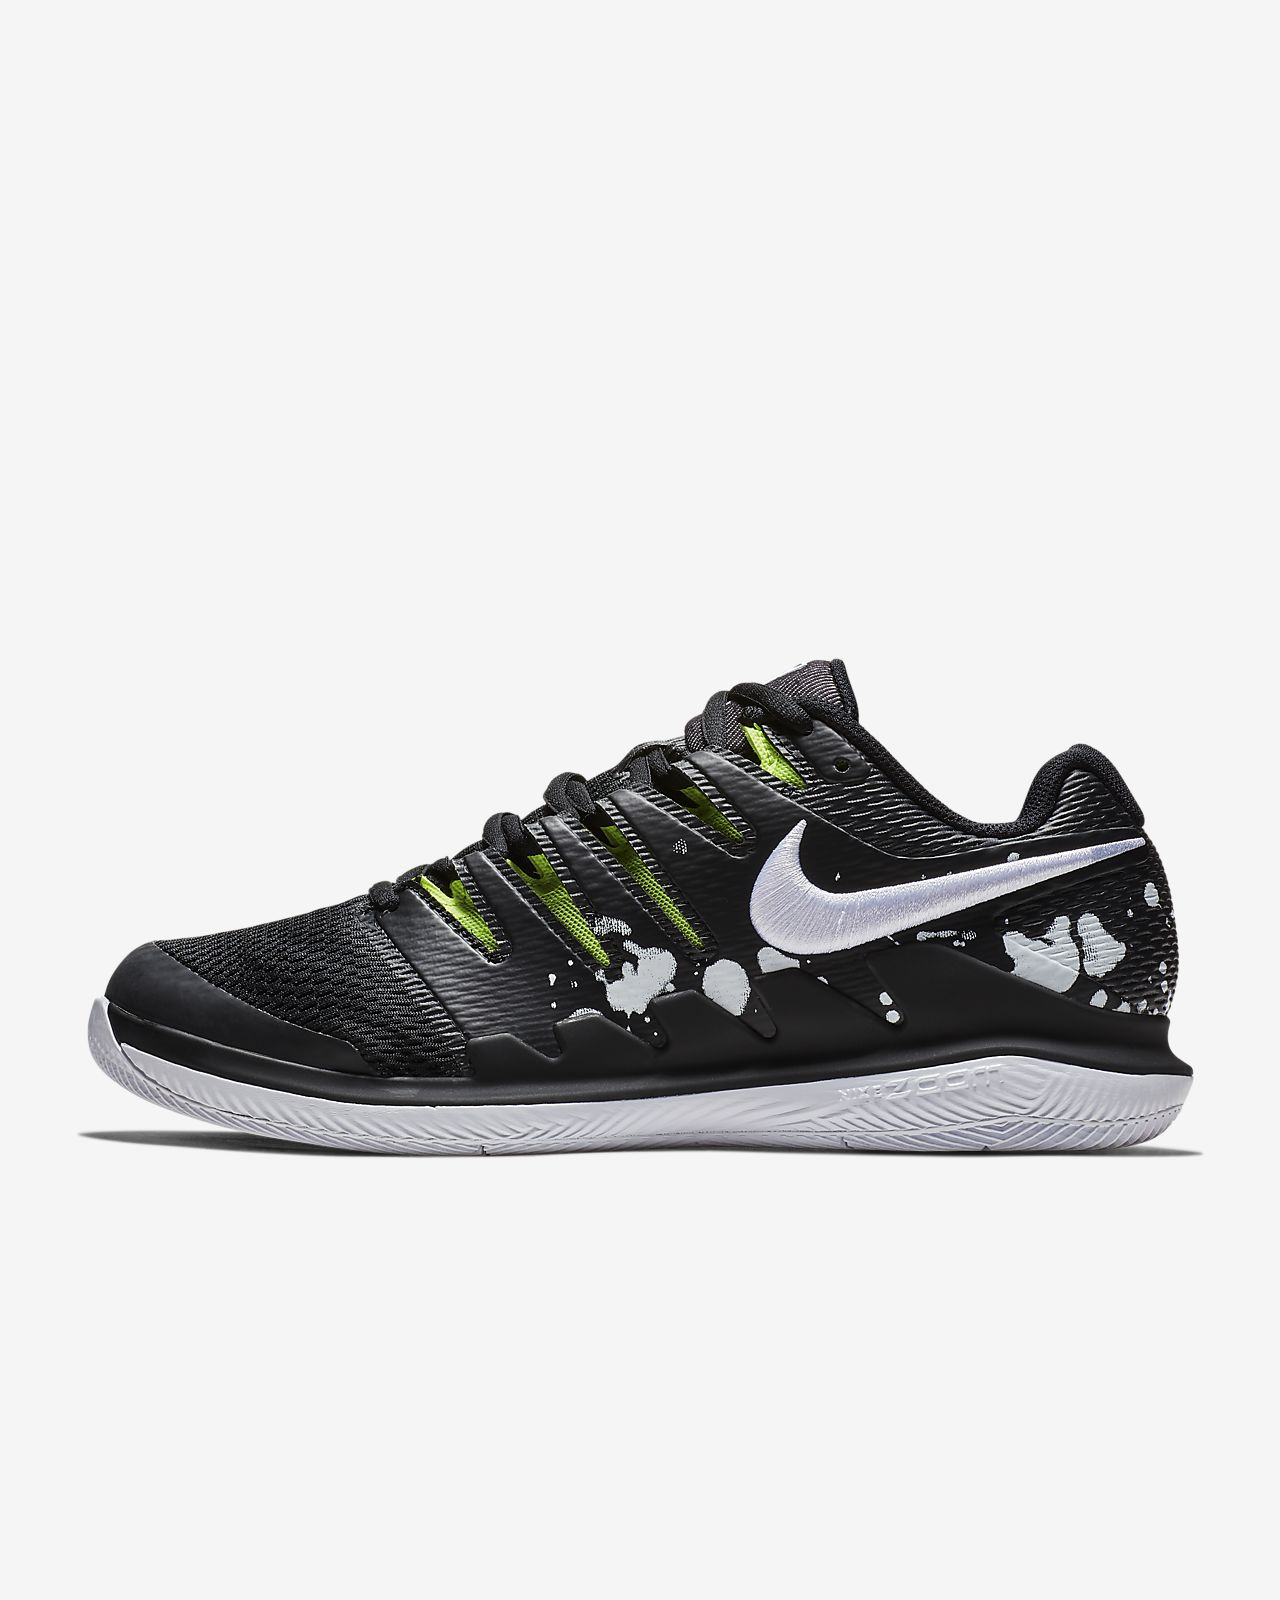 076dd18124 NikeCourt Air Zoom Vapor X Premium Hard-Court Men's Tennis Shoe ...